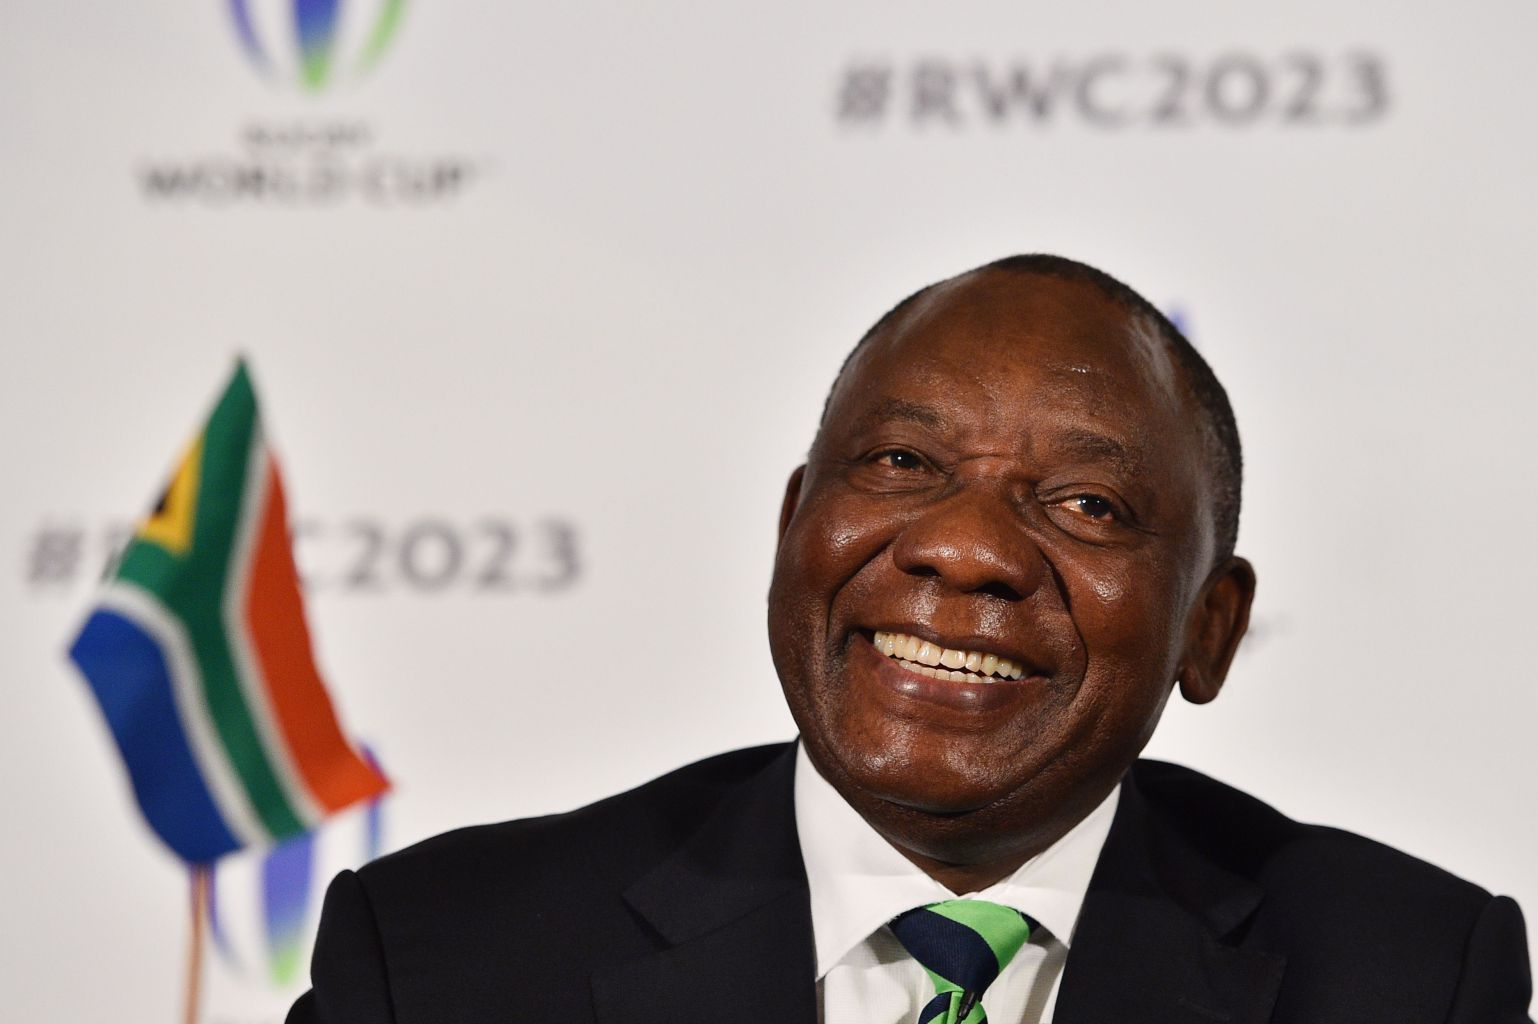 Revealed: The Real Reason President Cyril Ramaphosa Extended The Lockdown